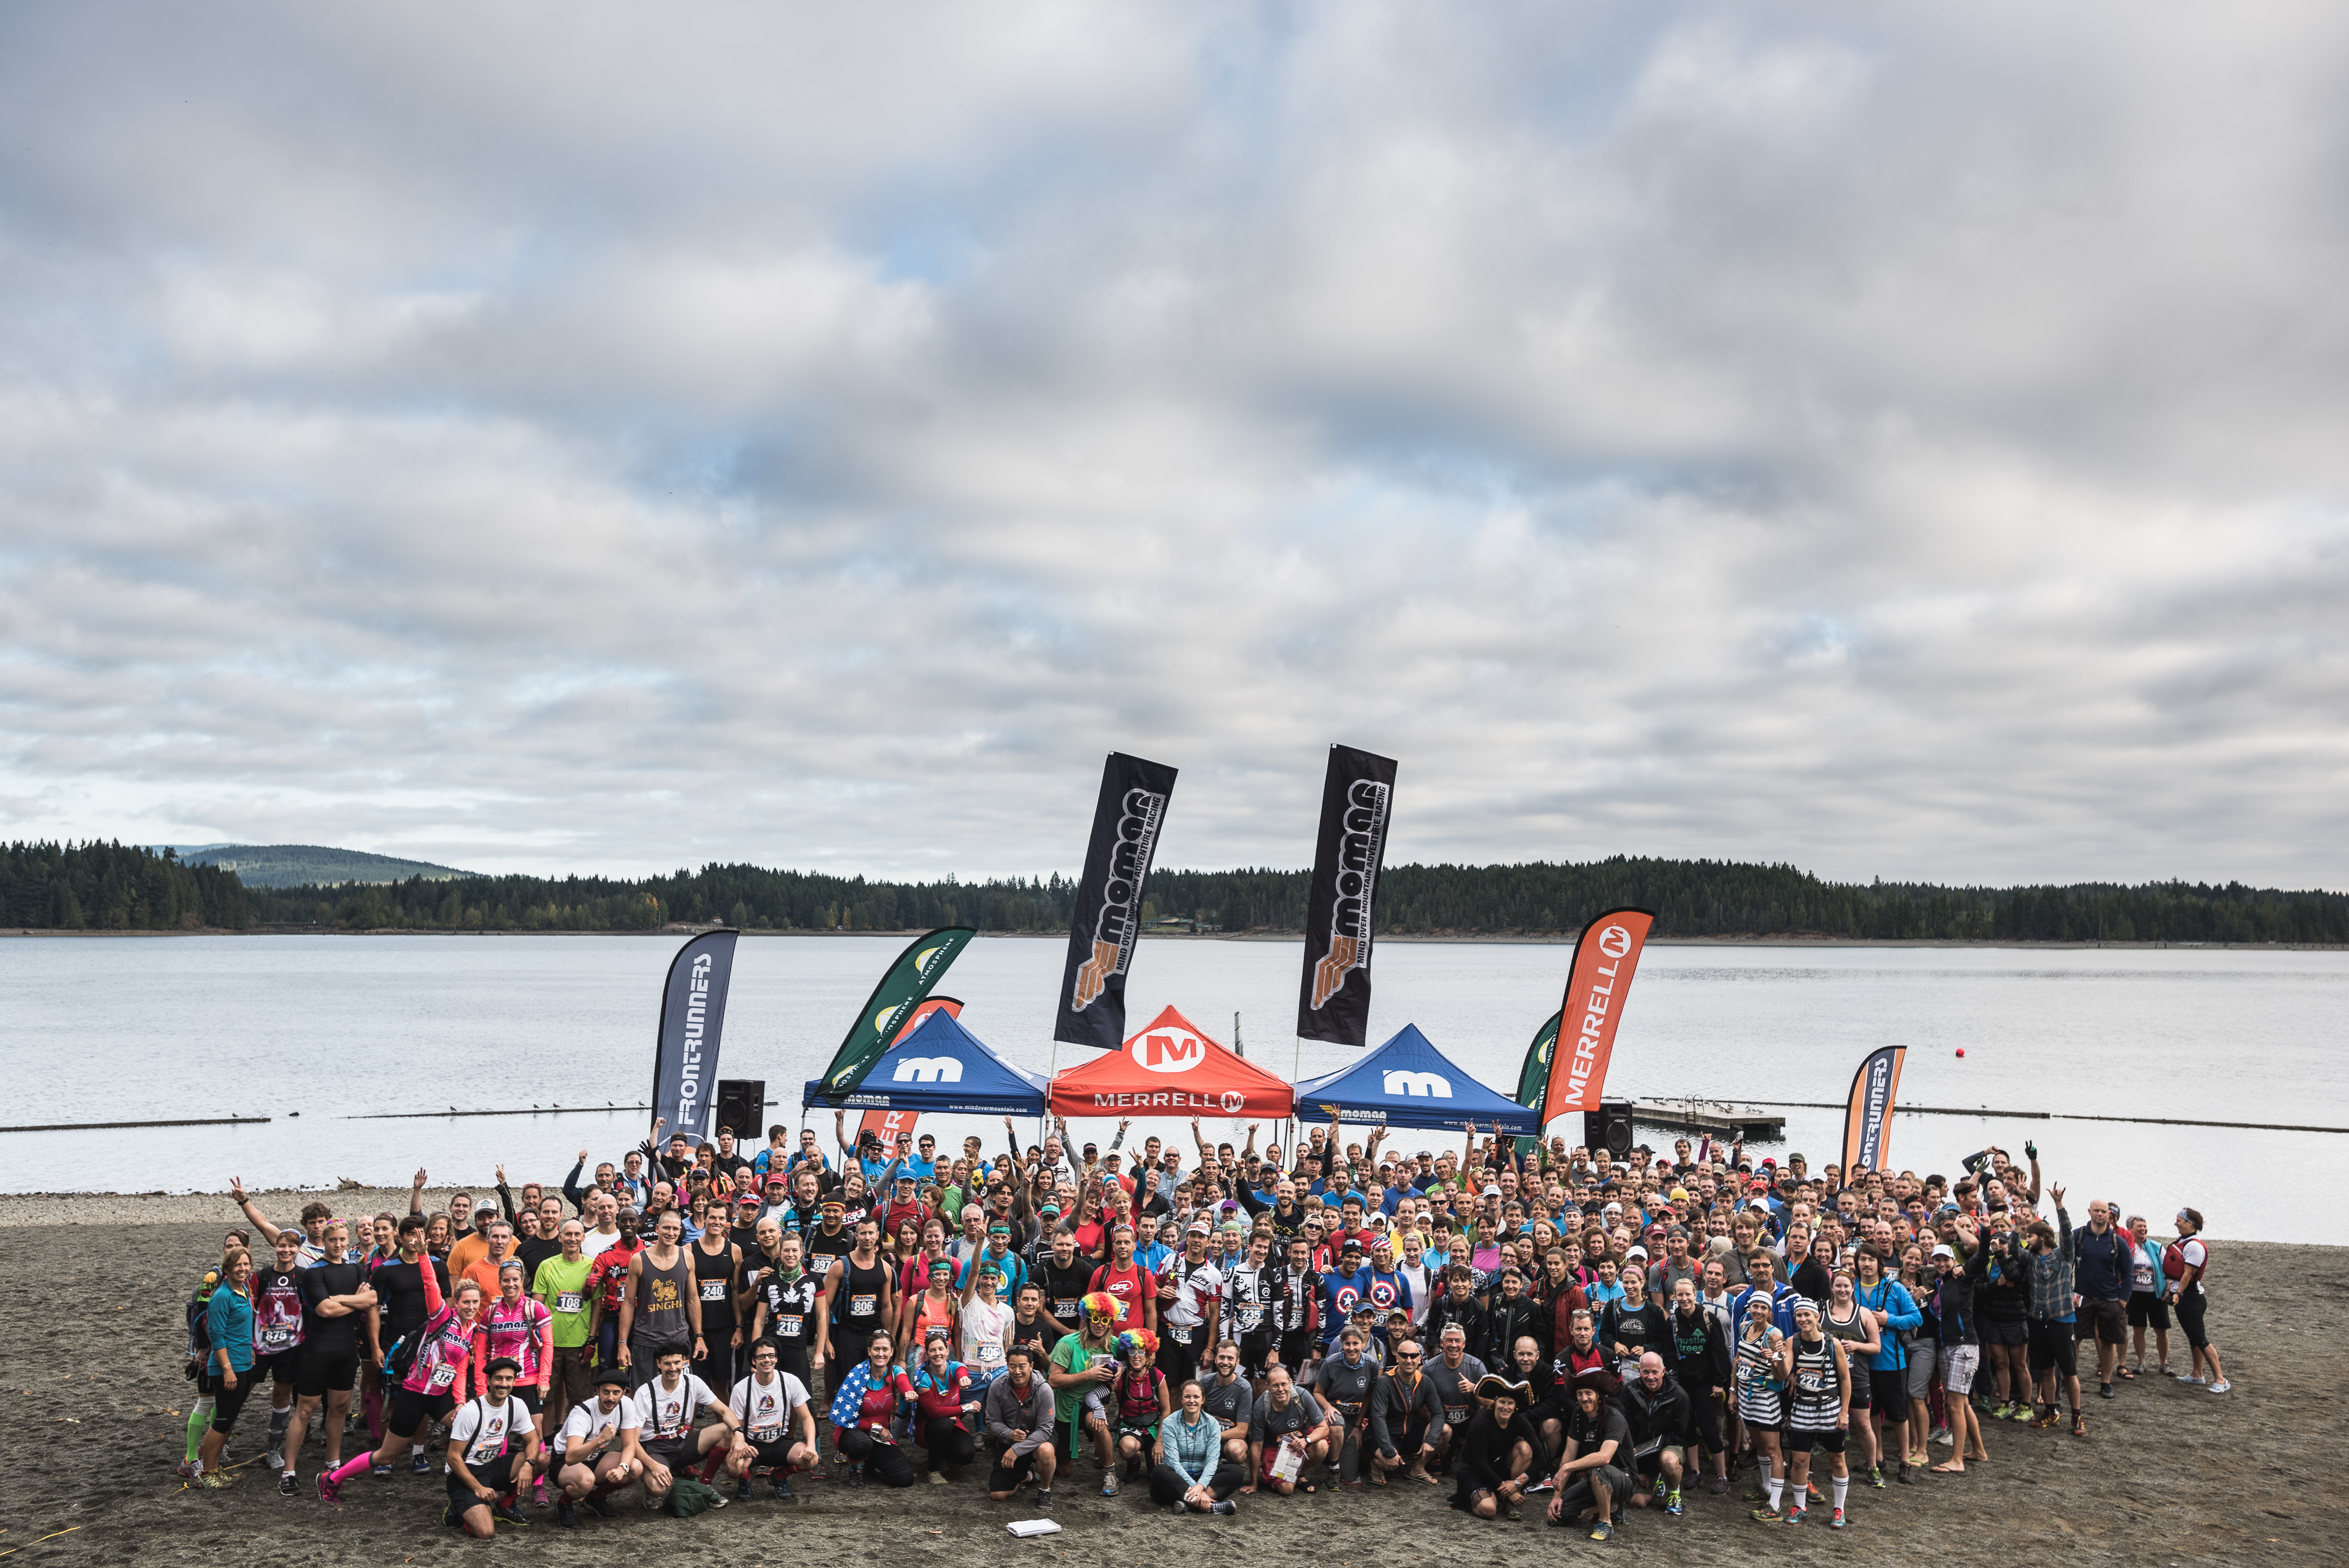 Group Photo of the racers at the 2014 MOMAR Cumberland, BC - Photo by Dave Silver, Record Sell-out for the Atmosphere Mind Over Mountain Adventure Race